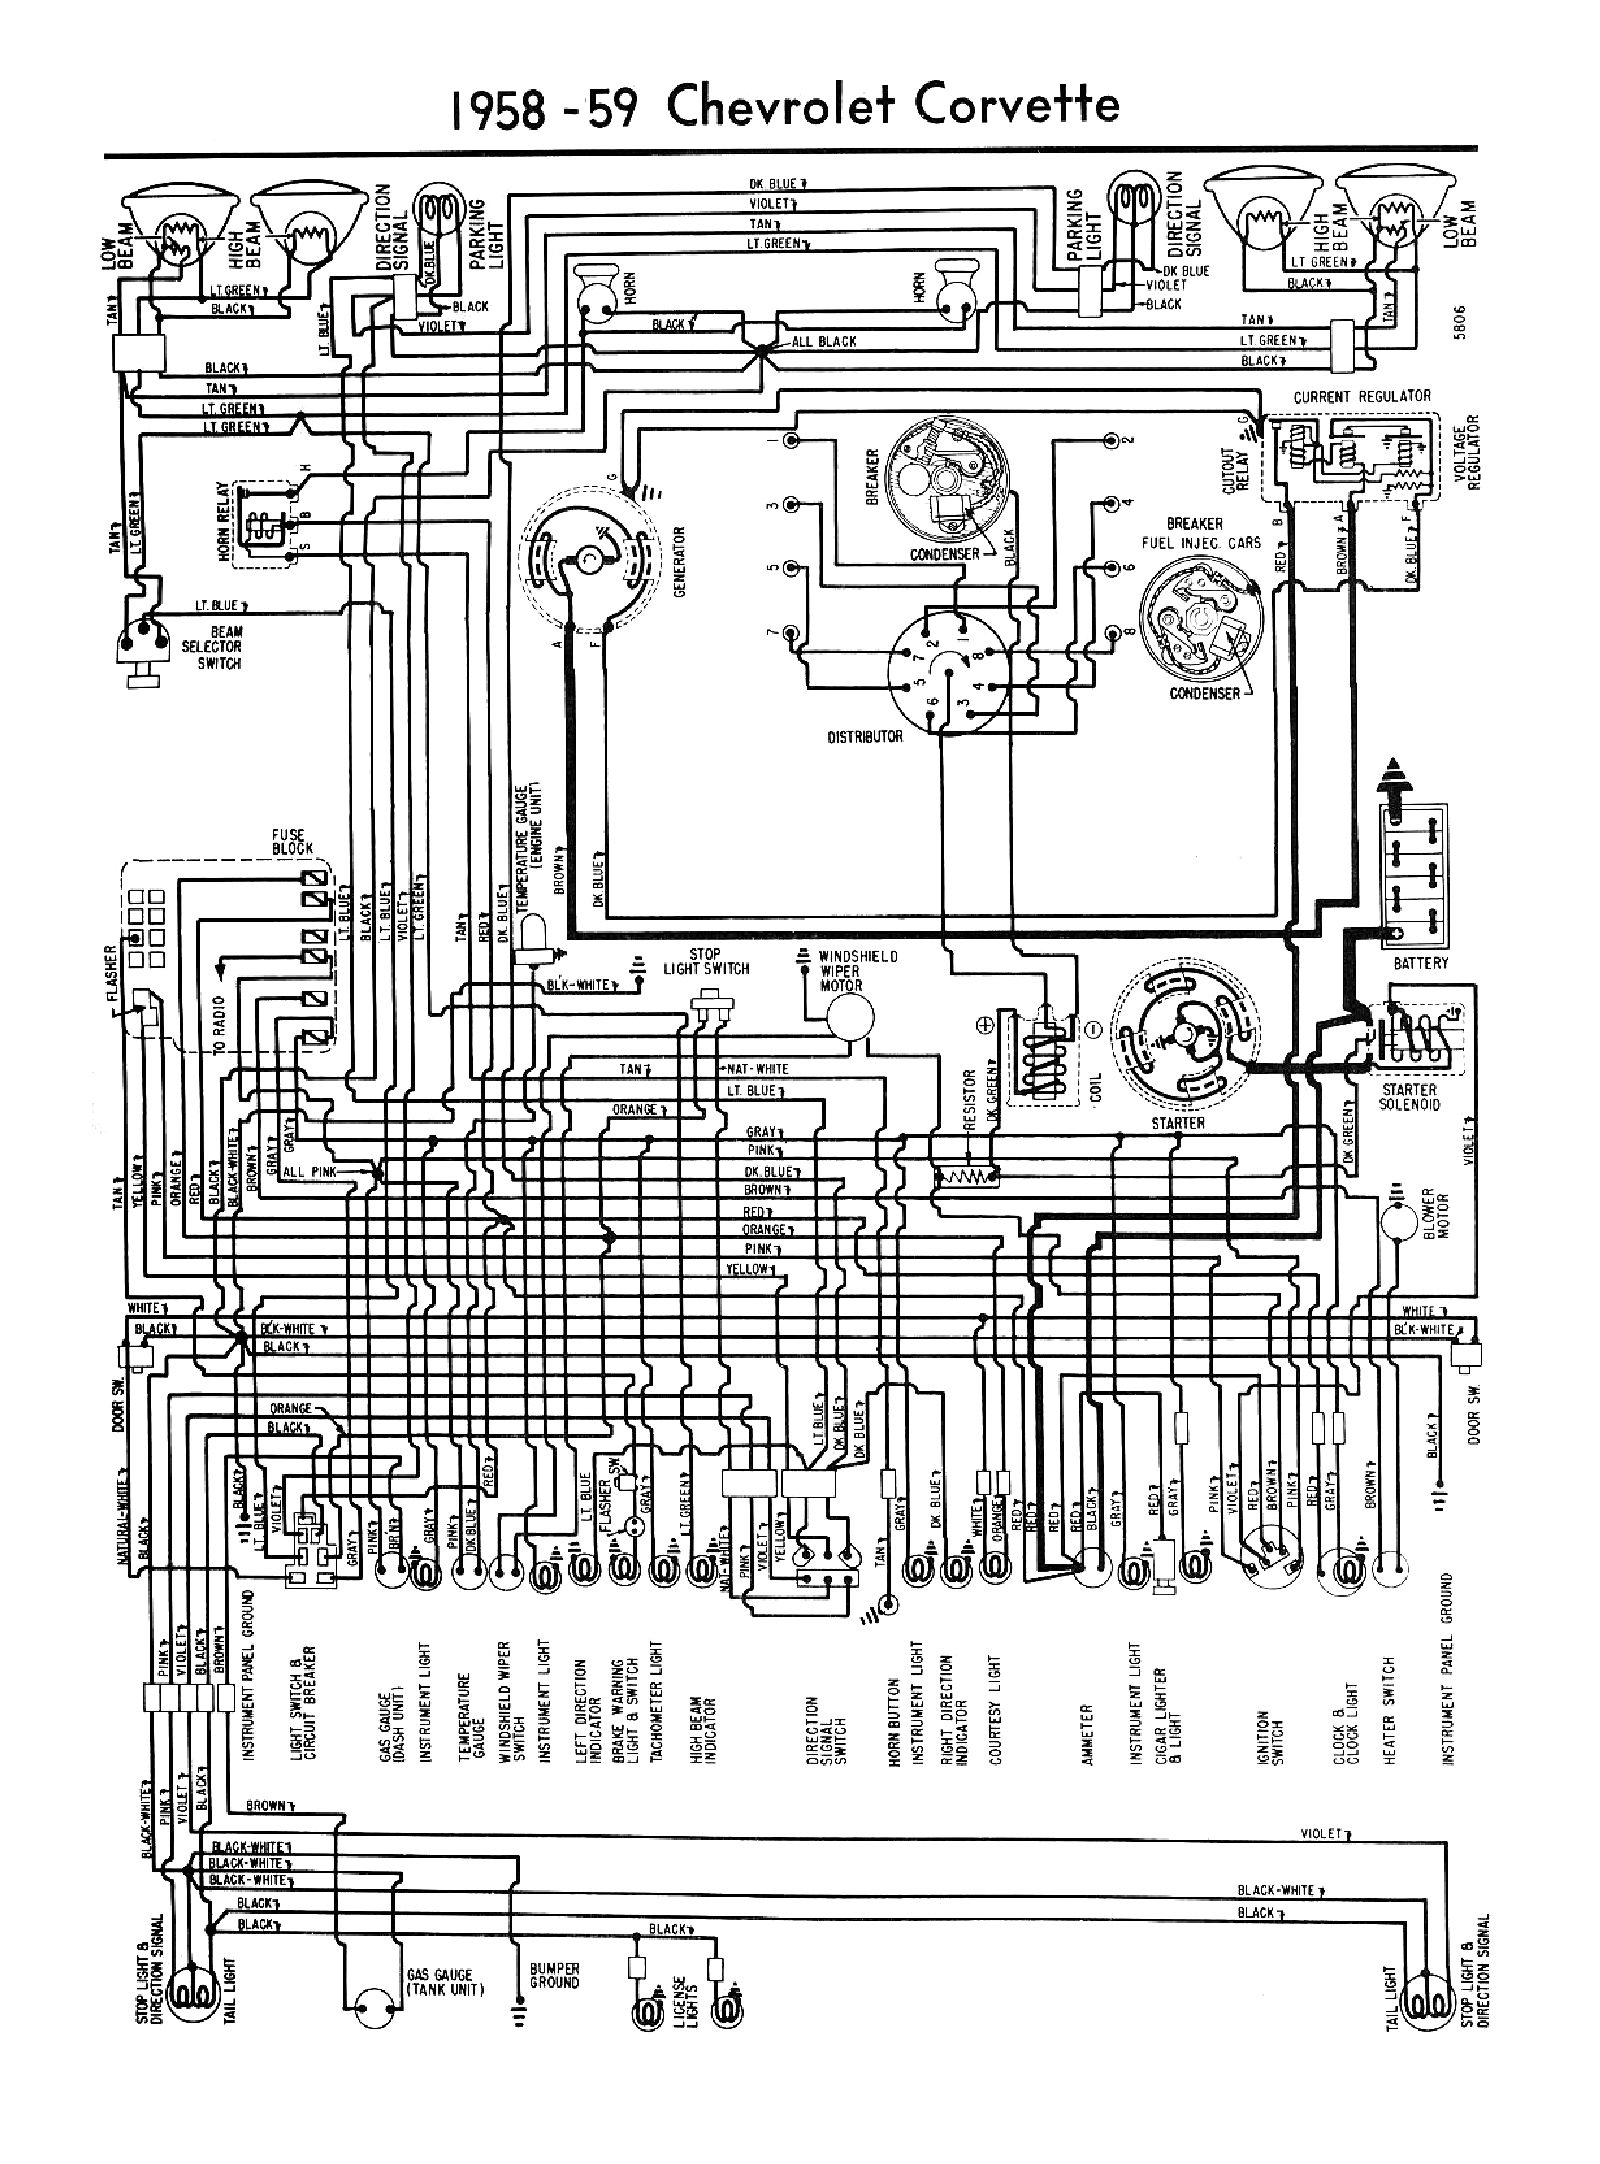 hight resolution of 1959 corvette wiring diagram wiring diagram third level 1968 camaro engine diagram 1959 corvette wiring diagram